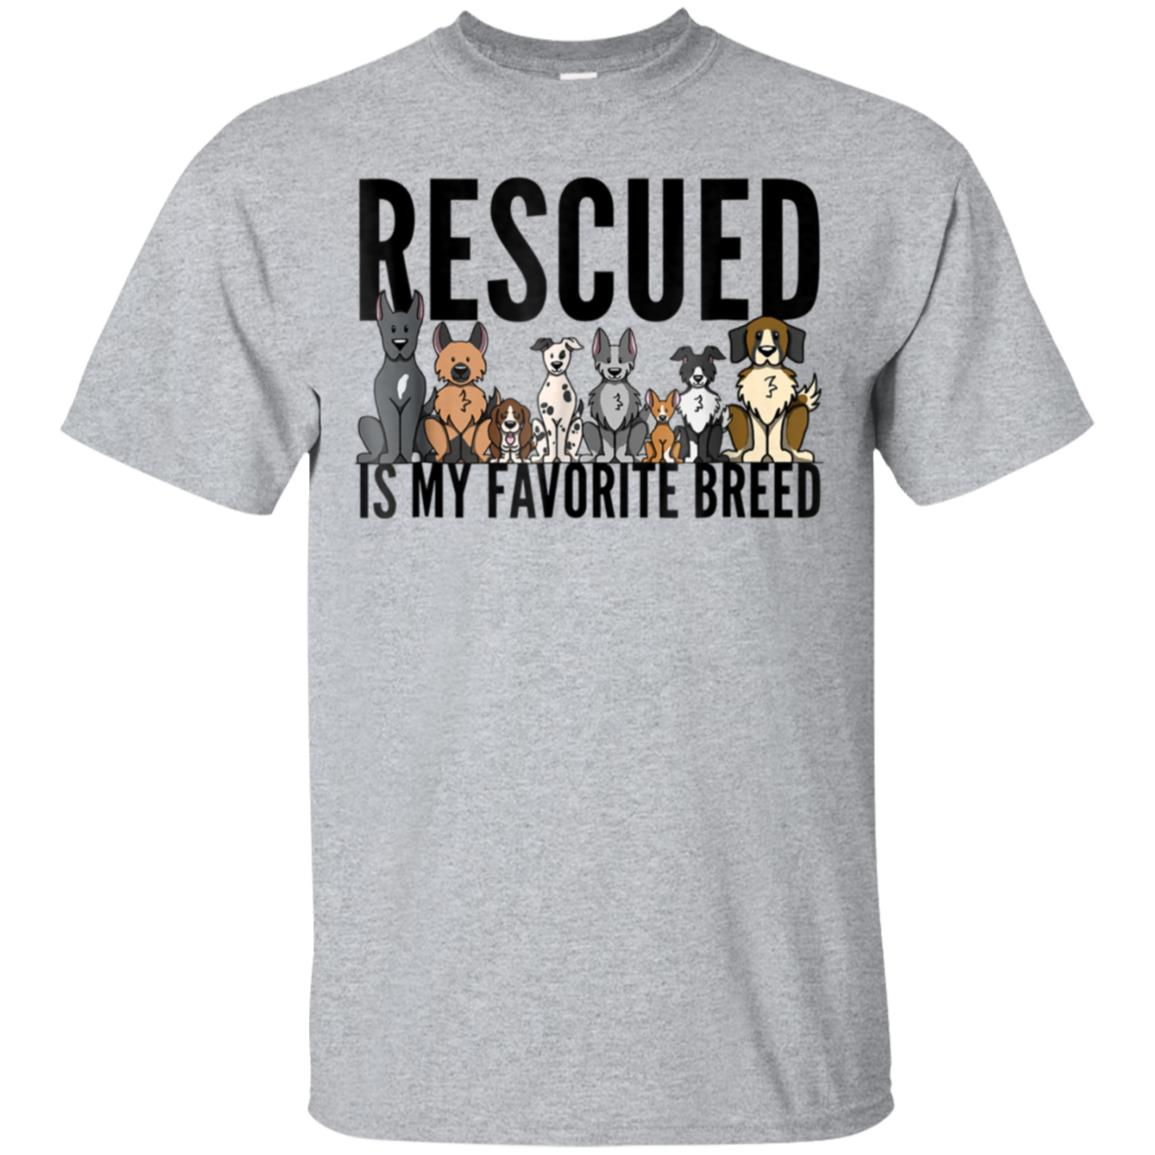 Dog Lovers T-Shirt for Women Men Kids - Rescue Dog Shirt 99promocode